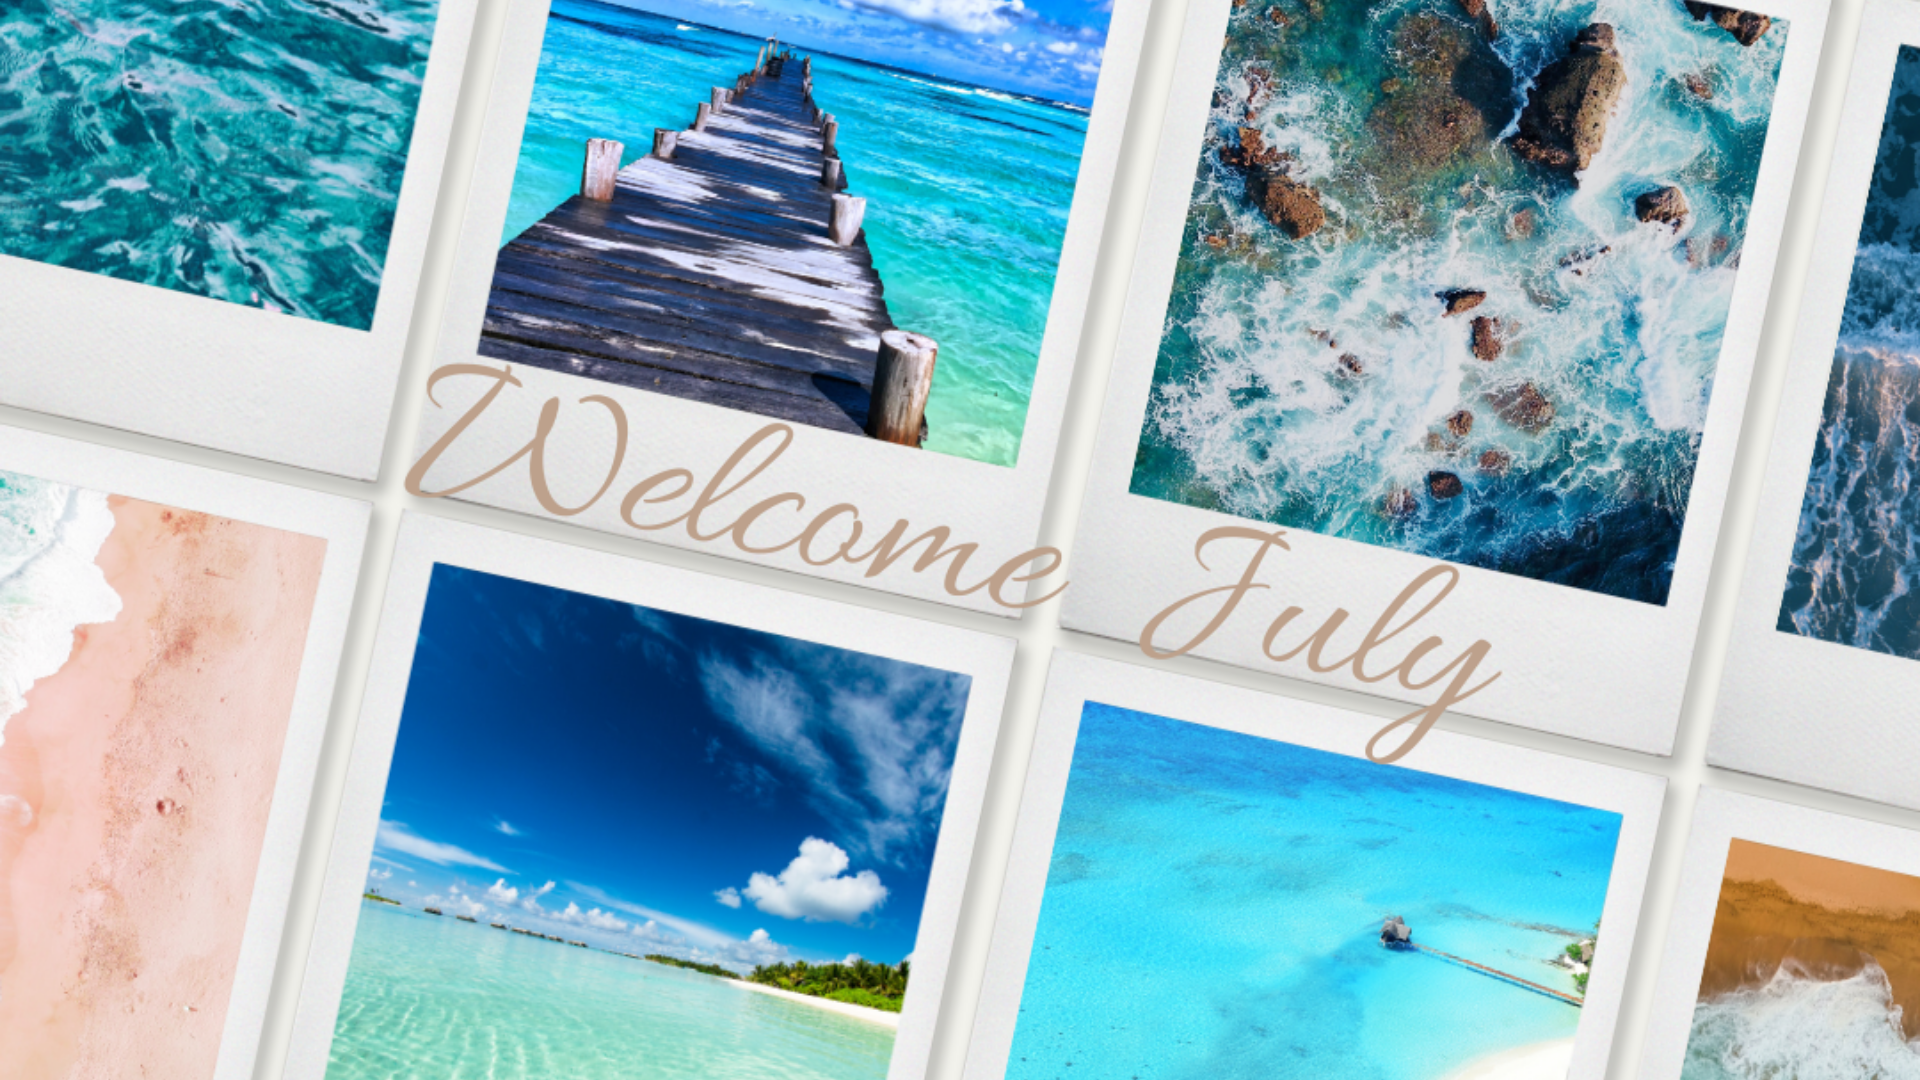 Free phone and PC wallpaper – July 2020